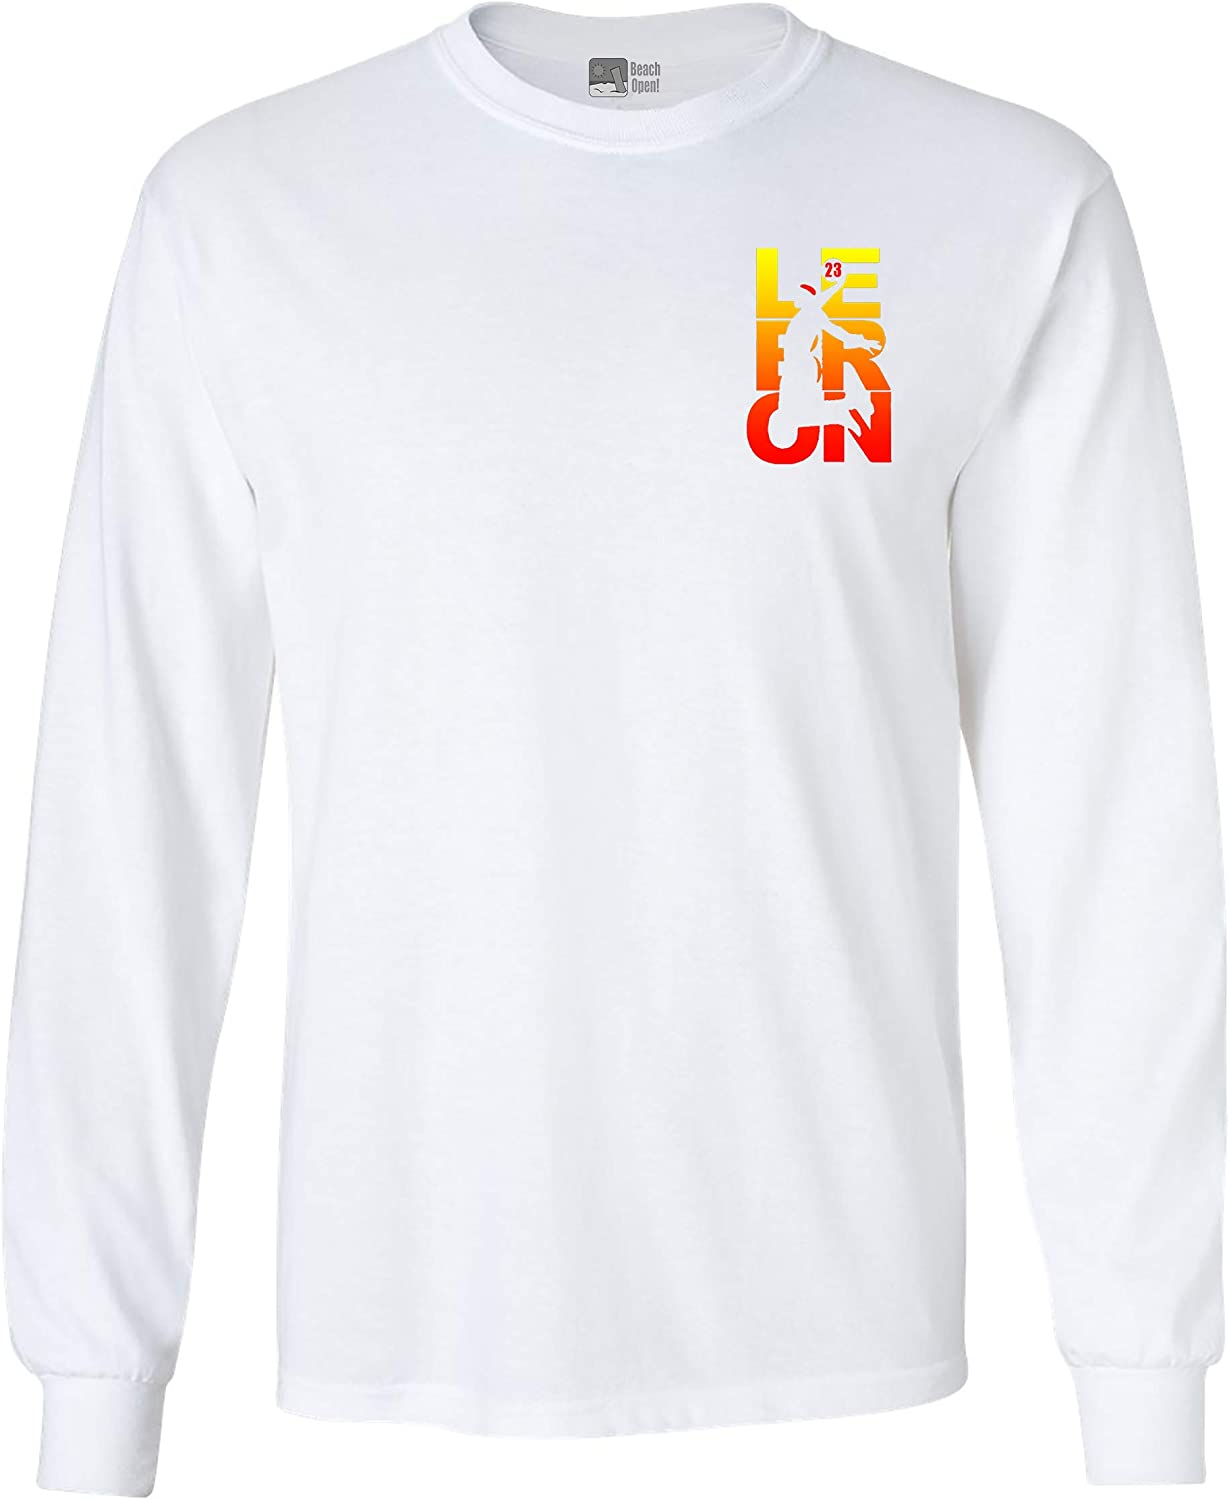 Long Sleeve Adult T-Shirt Jacksonville Mall New Lebron Fan Cleveland an Wear Front Genuine Free Shipping